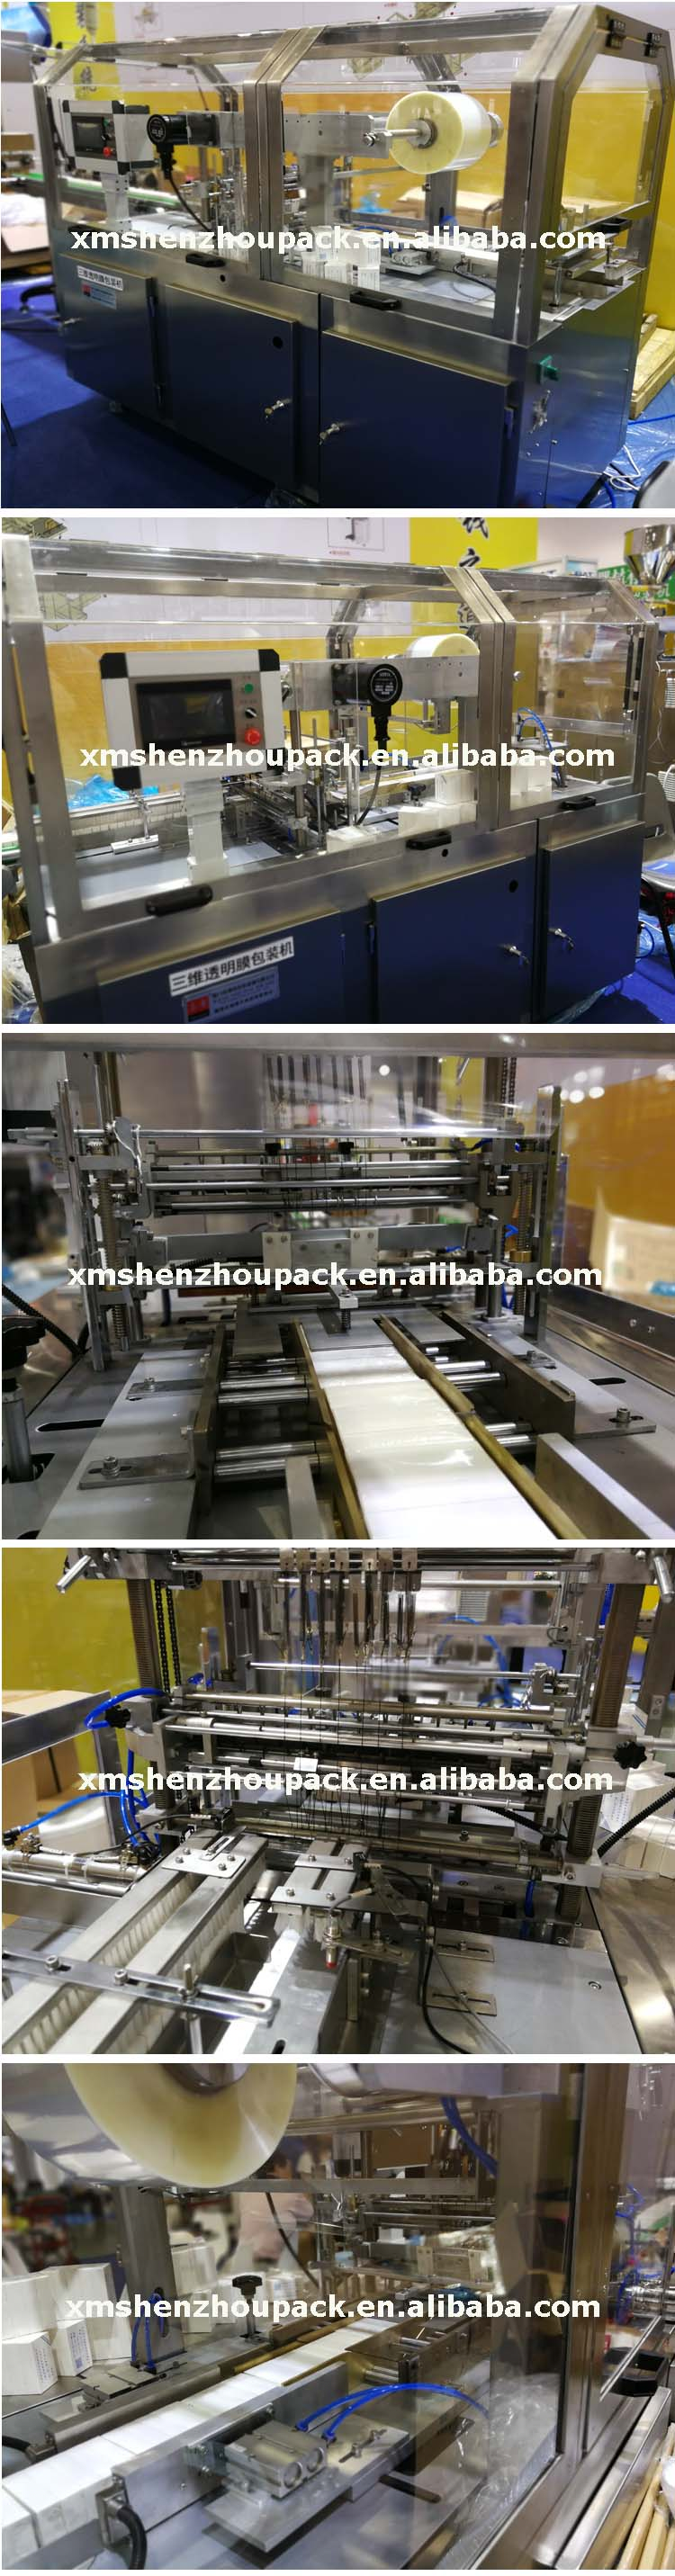 Automatic Cellophane BOPP PVC Plastic Film Box Overwrapping Machine with Tear Tape Applicator for Tea Bag Perfume Cosmetic